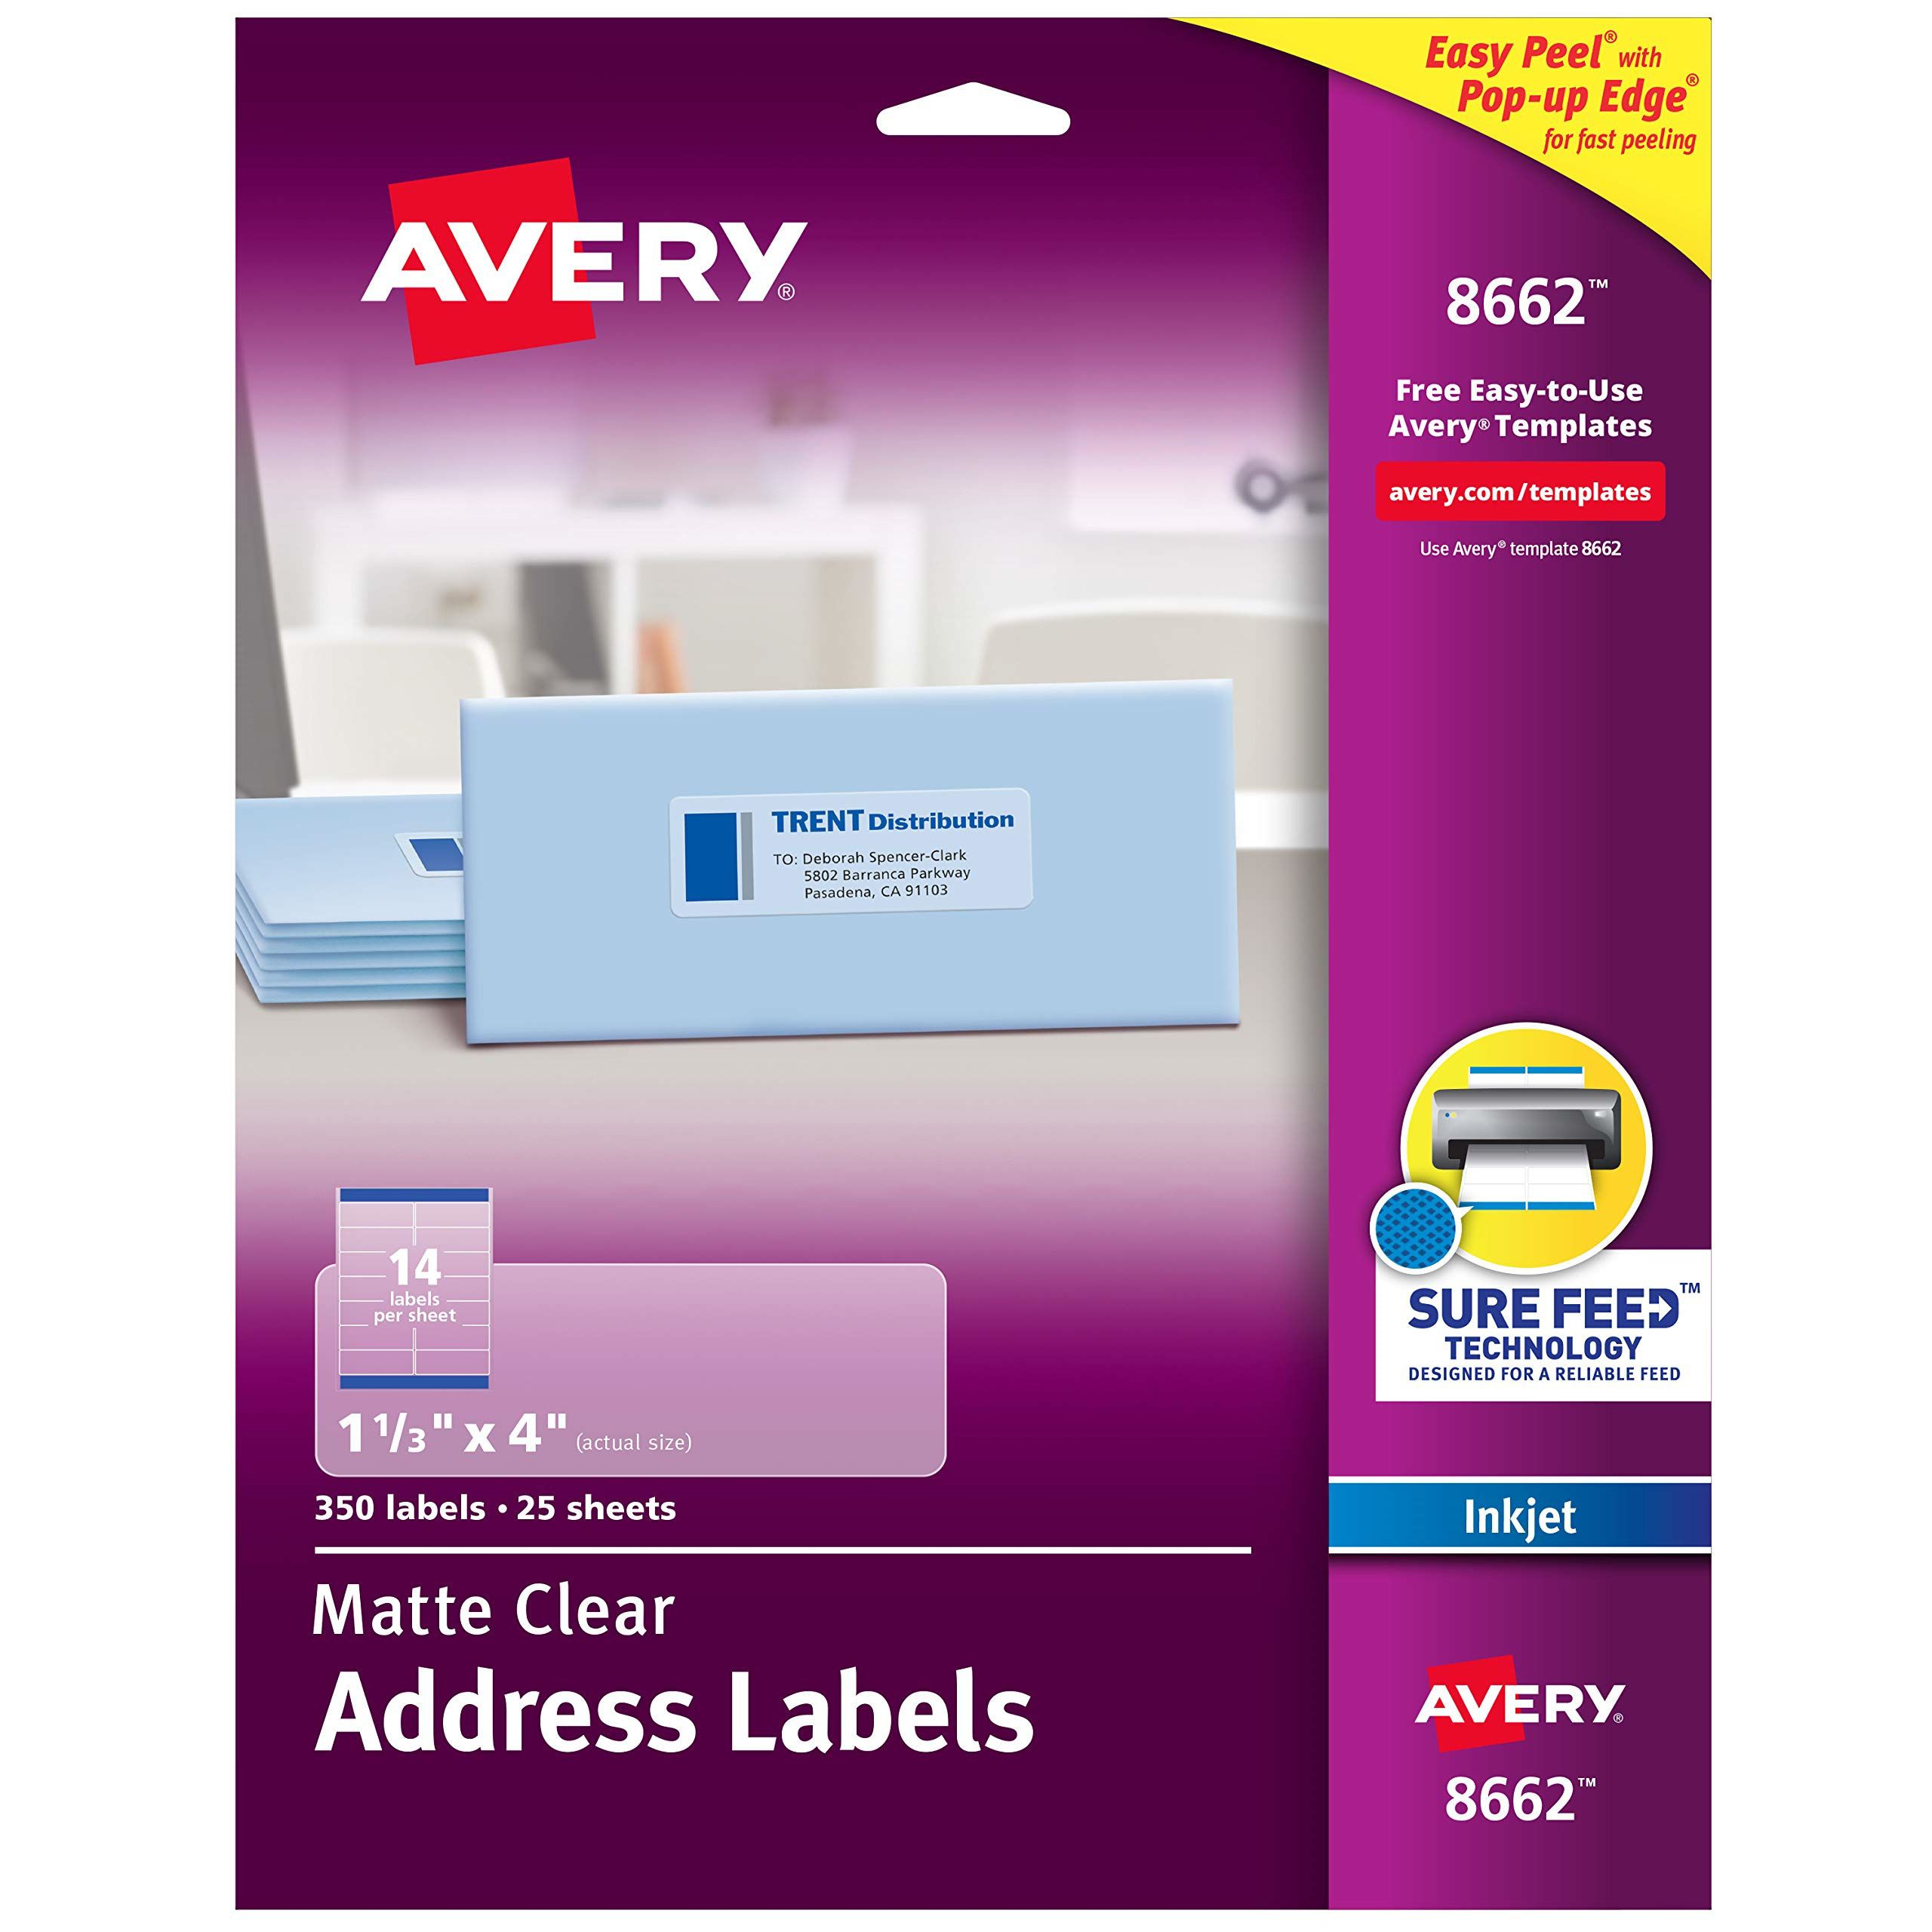 000 Wonderful Free Avery Addres Label Template For Mac High Def  5160Full